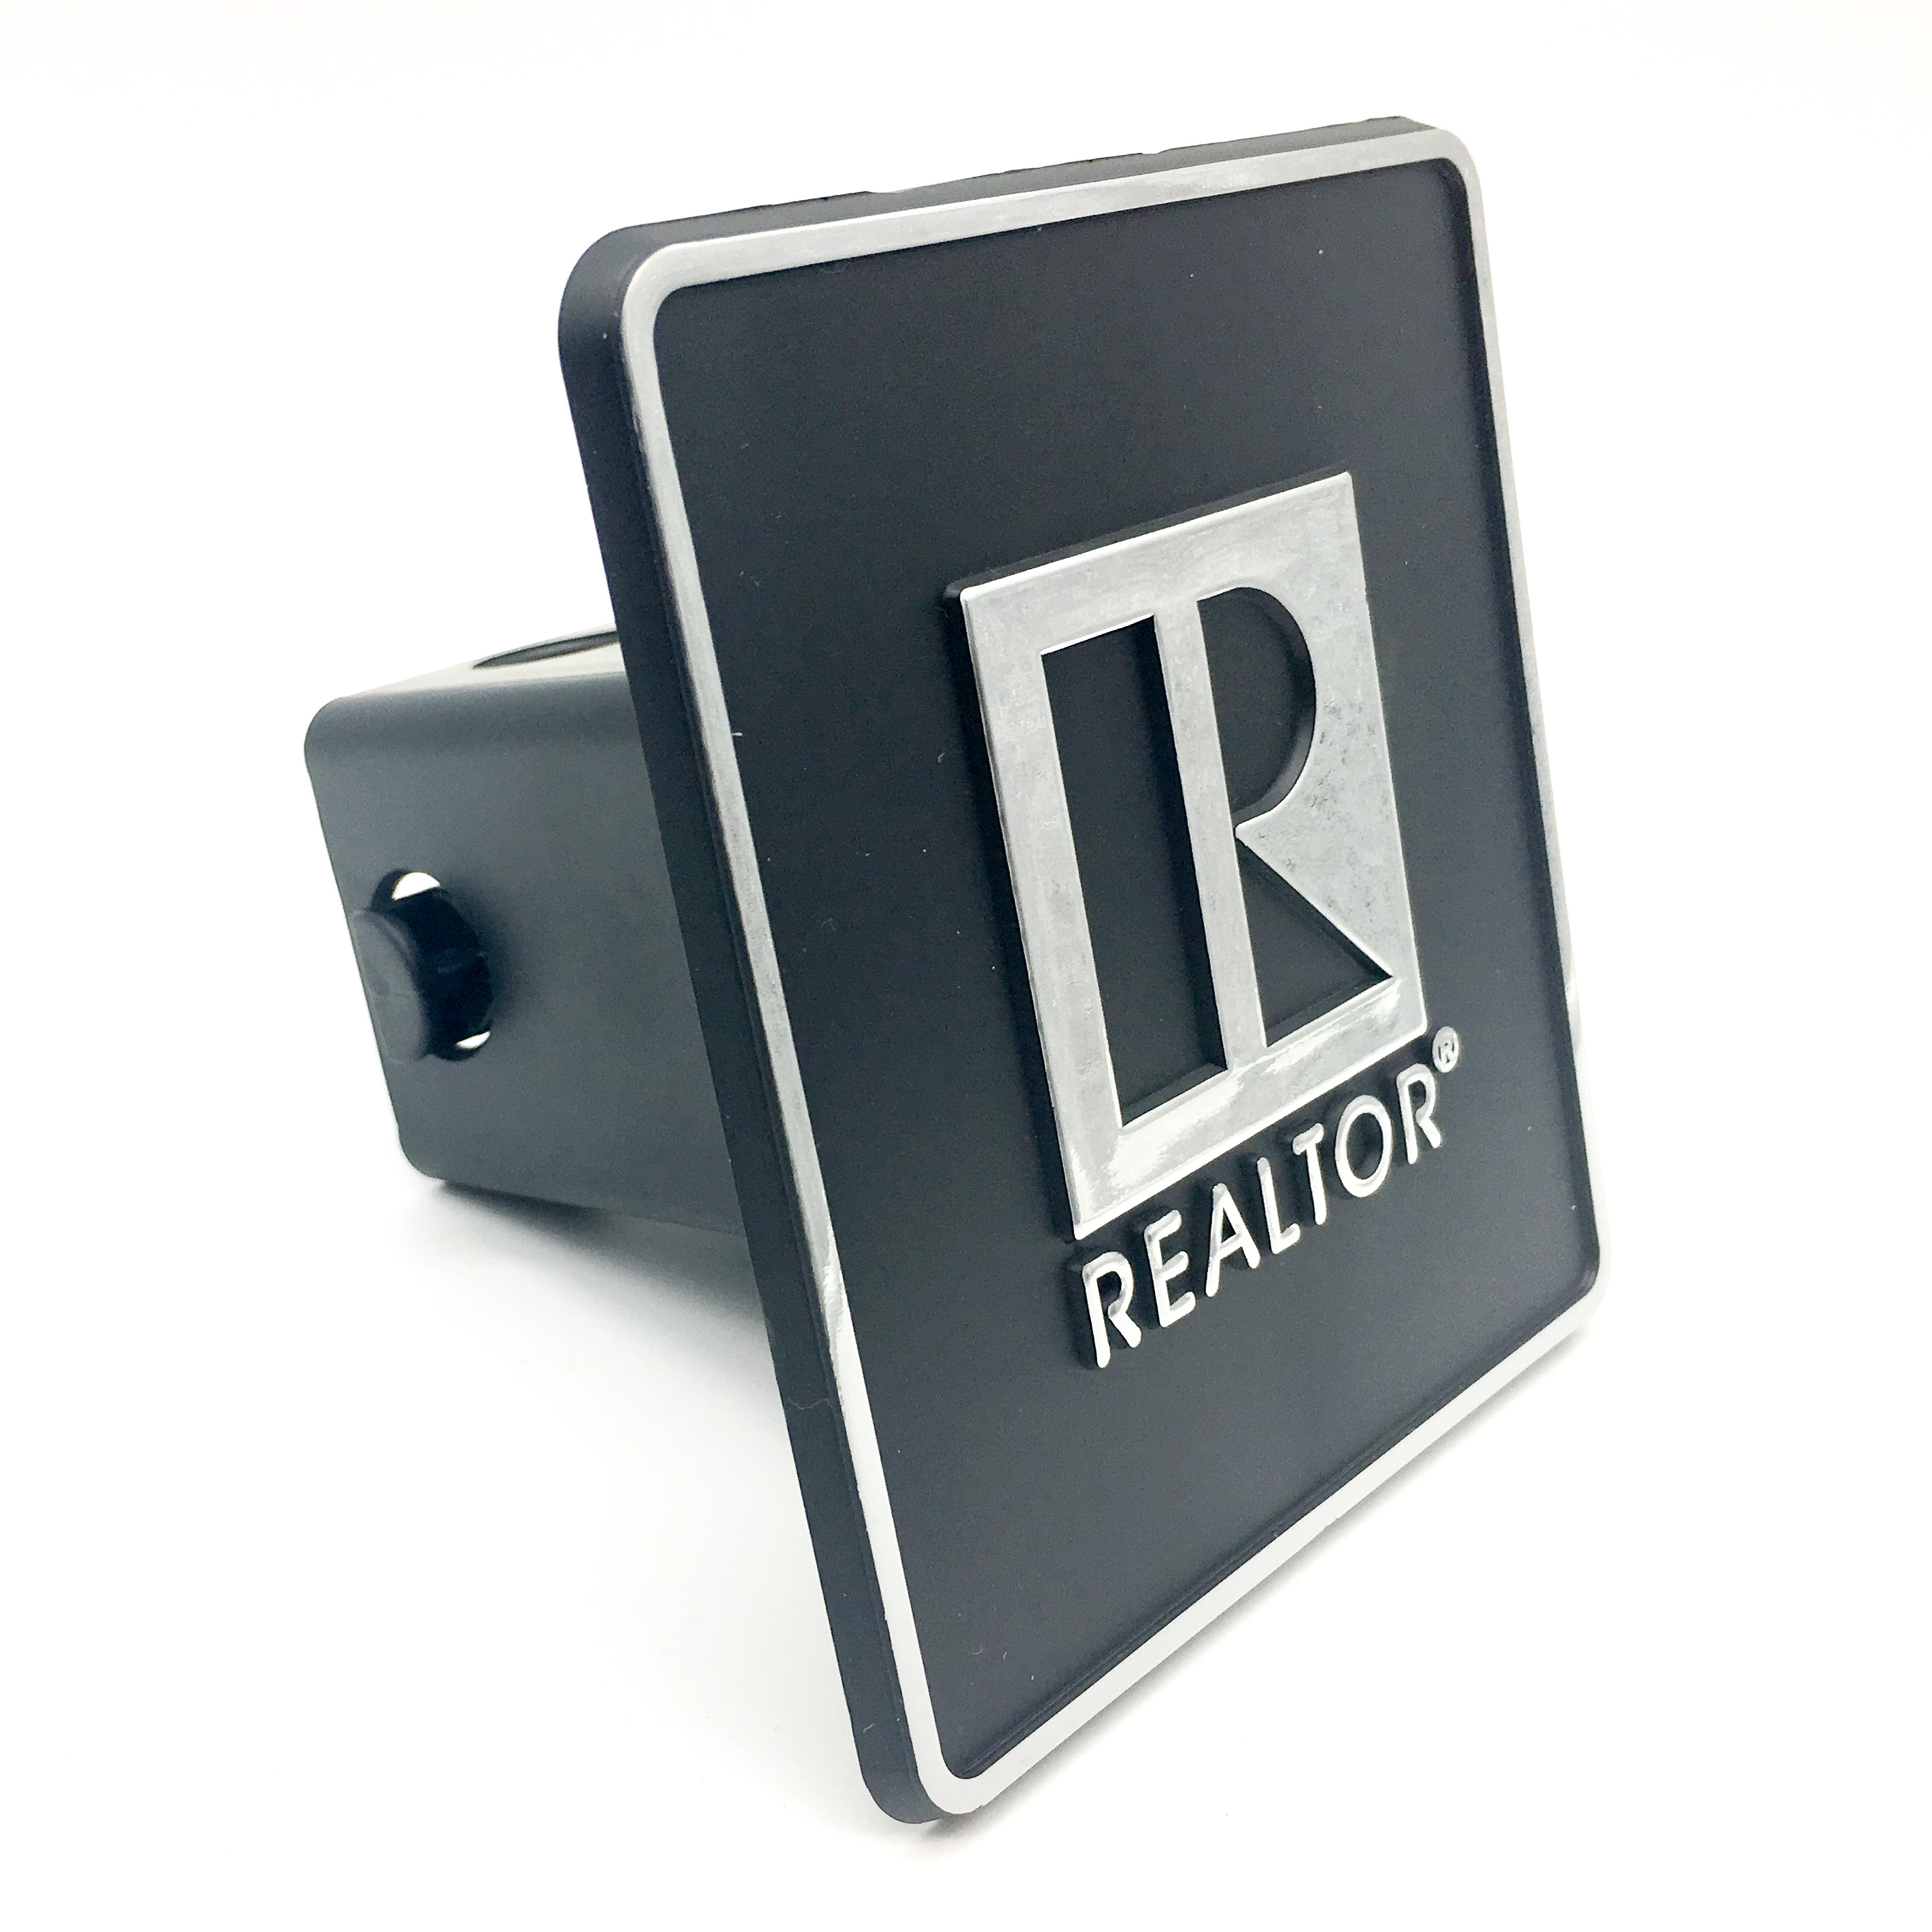 REALTOR®-logo Hitch Cover Hitches,Hithc,Hitchs,Covers,HitchCovers,Plates